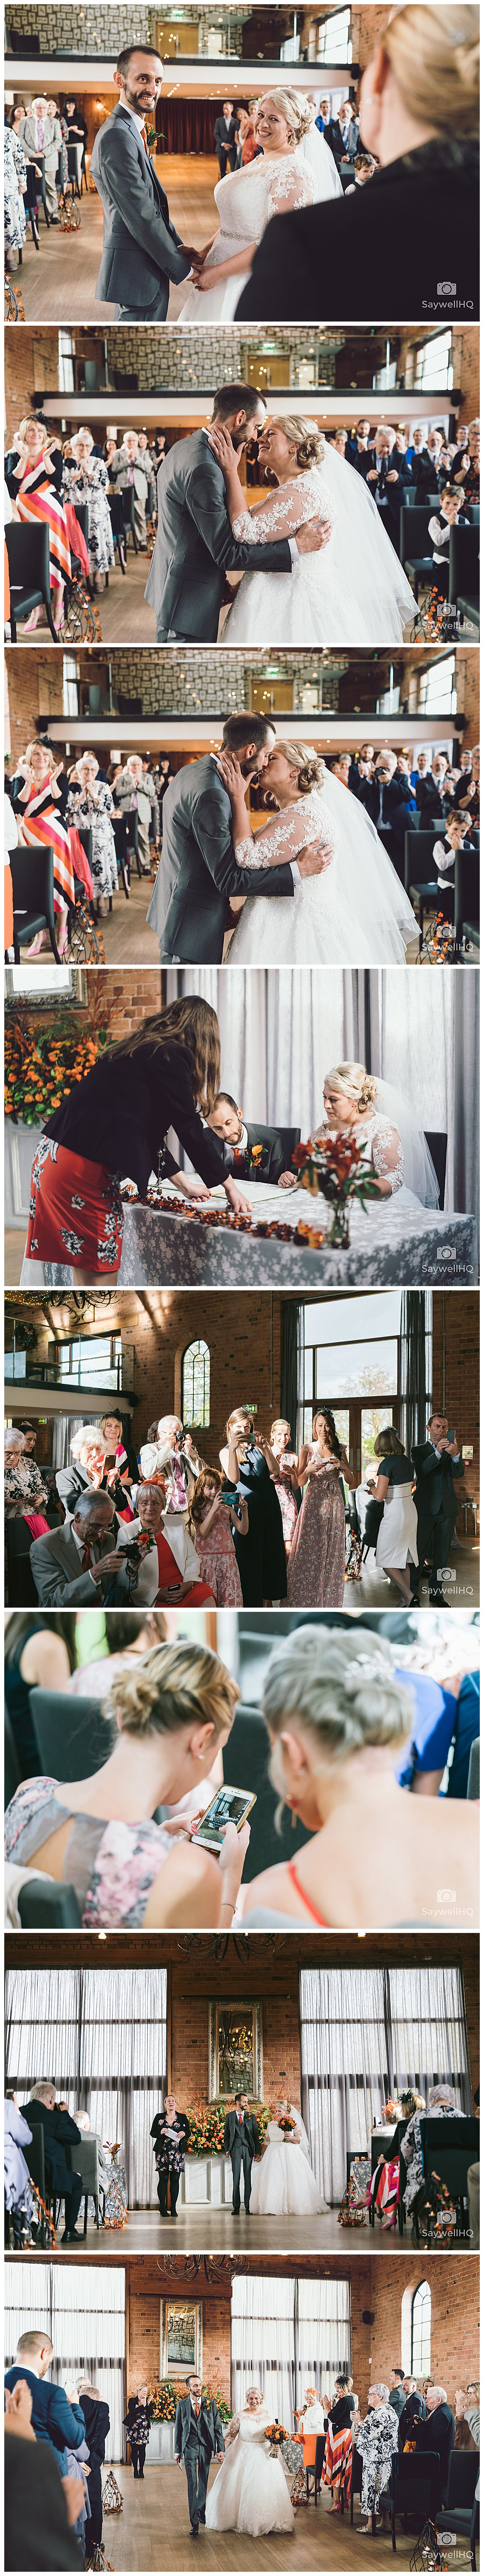 Wedding photography at Carriage Hall in Nottingham - bride and groom first kiss during their wedding at carriage hall